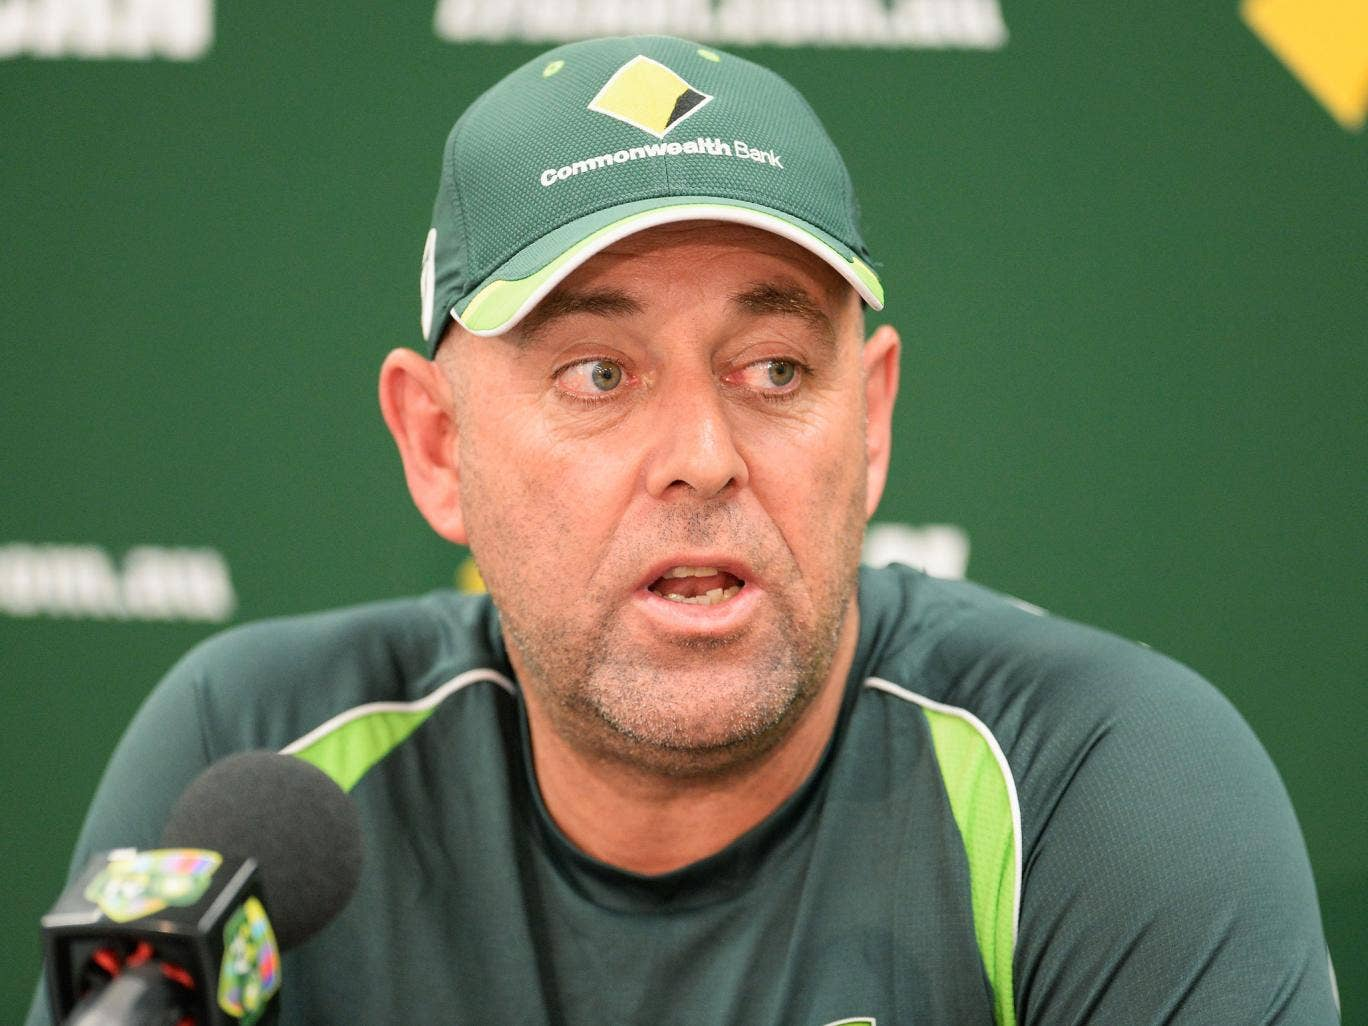 Australia coach Darren Lehmann has refused to comment on the Kevin Pietersen debacle as England's calamitous series continues